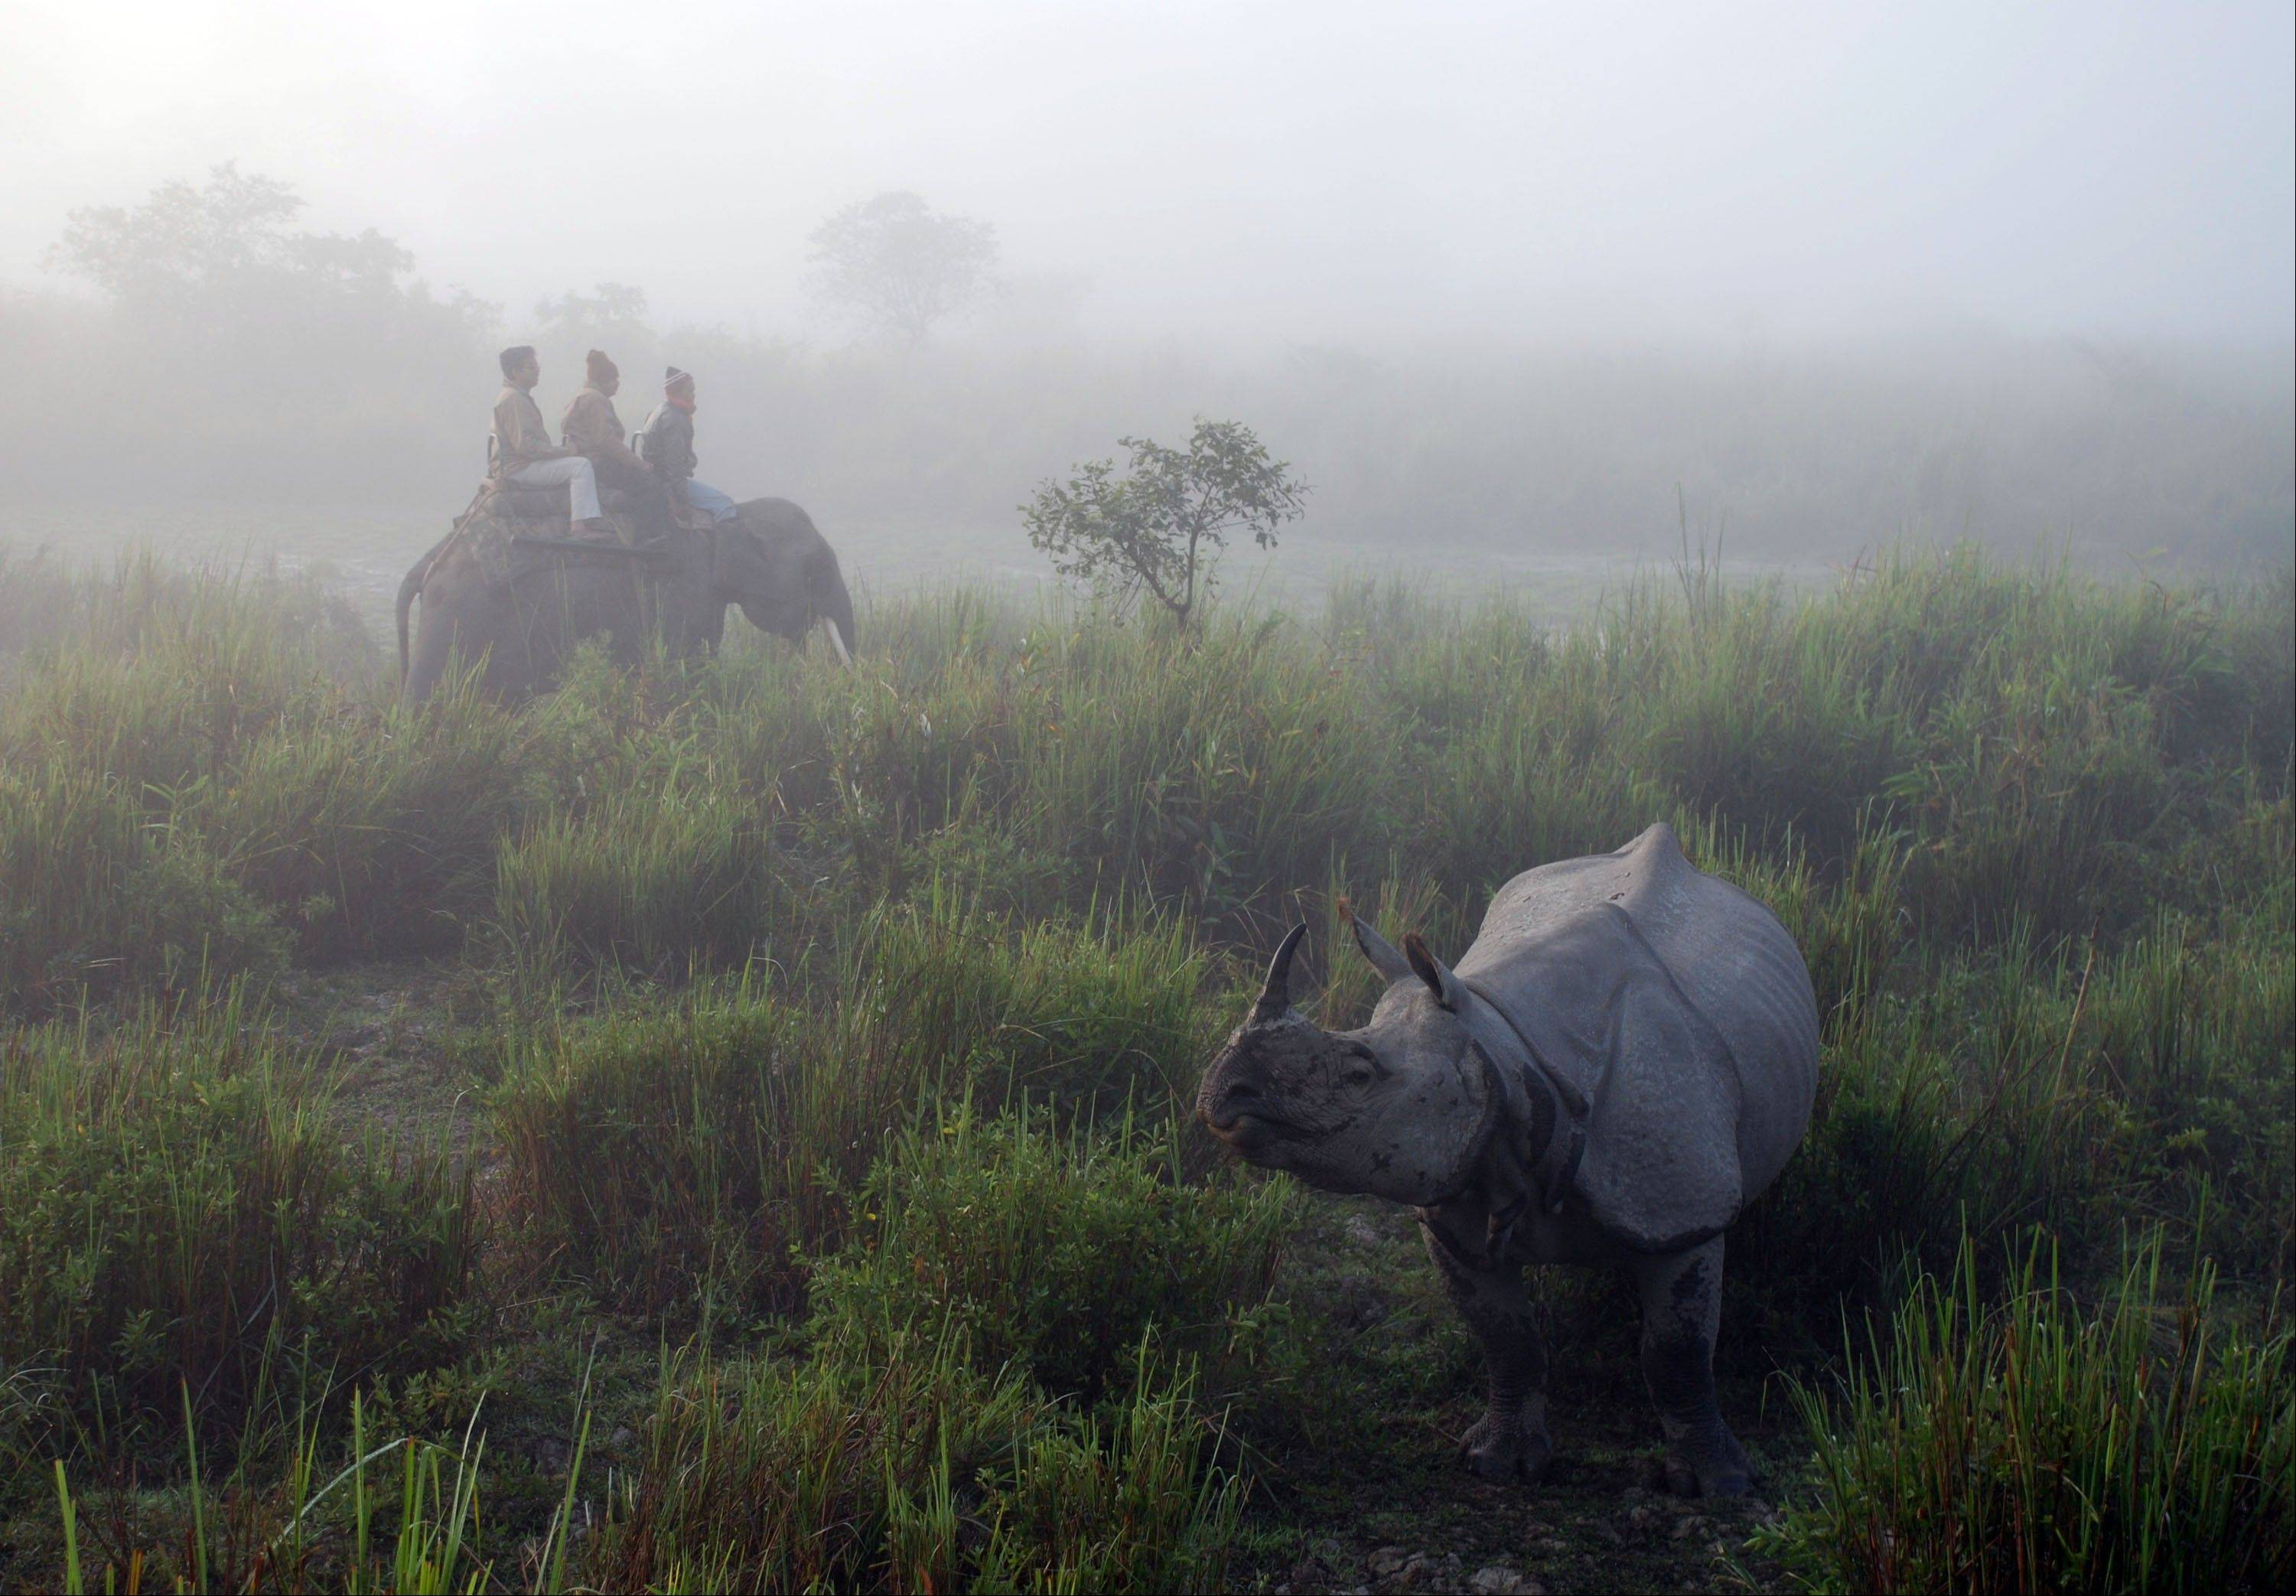 Tourists at the Kaziranga National Park take an early morning ride to view one-horned Indian rhinos in the mist in Assam's tea country in Kaziranga, India. Elephants, monkeys and other wild animals often wander through the tea estates.